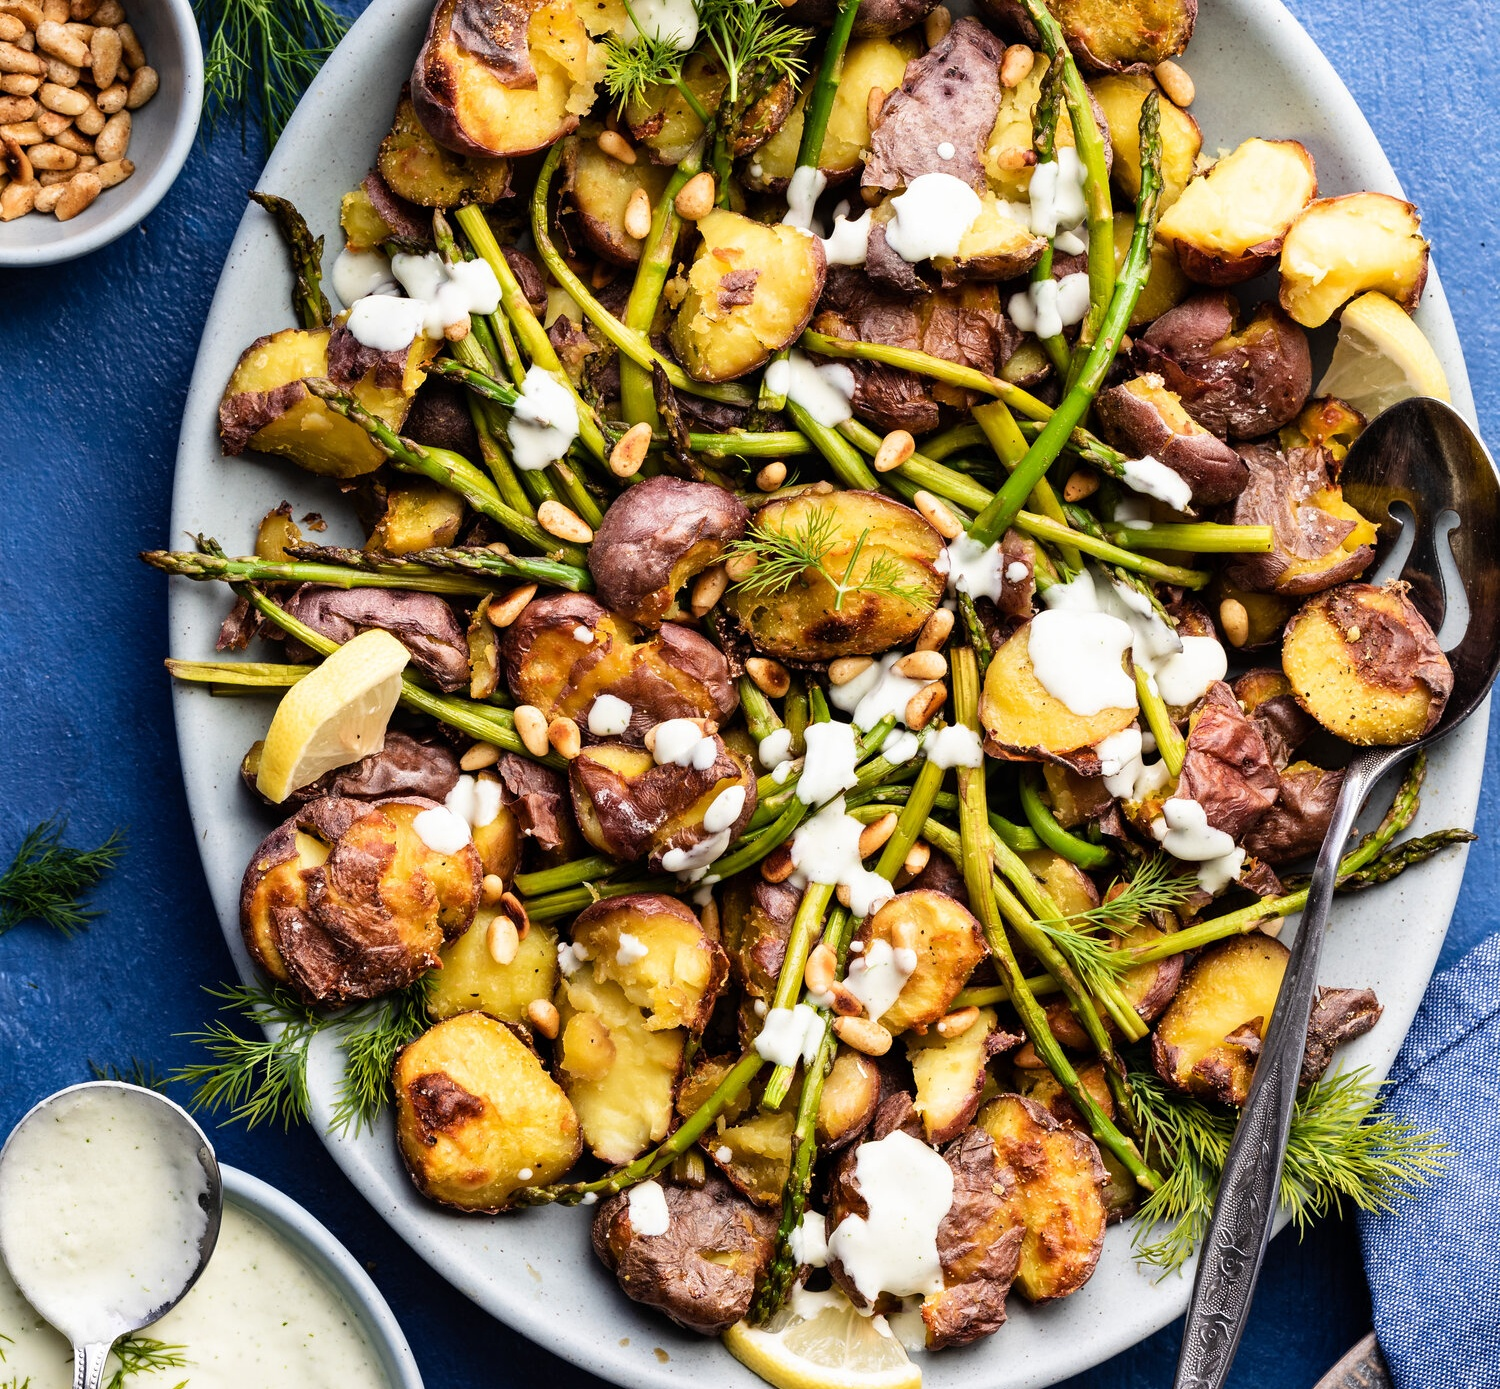 Vegan ROASTED POTATOES & ASPARAGUS SALAD